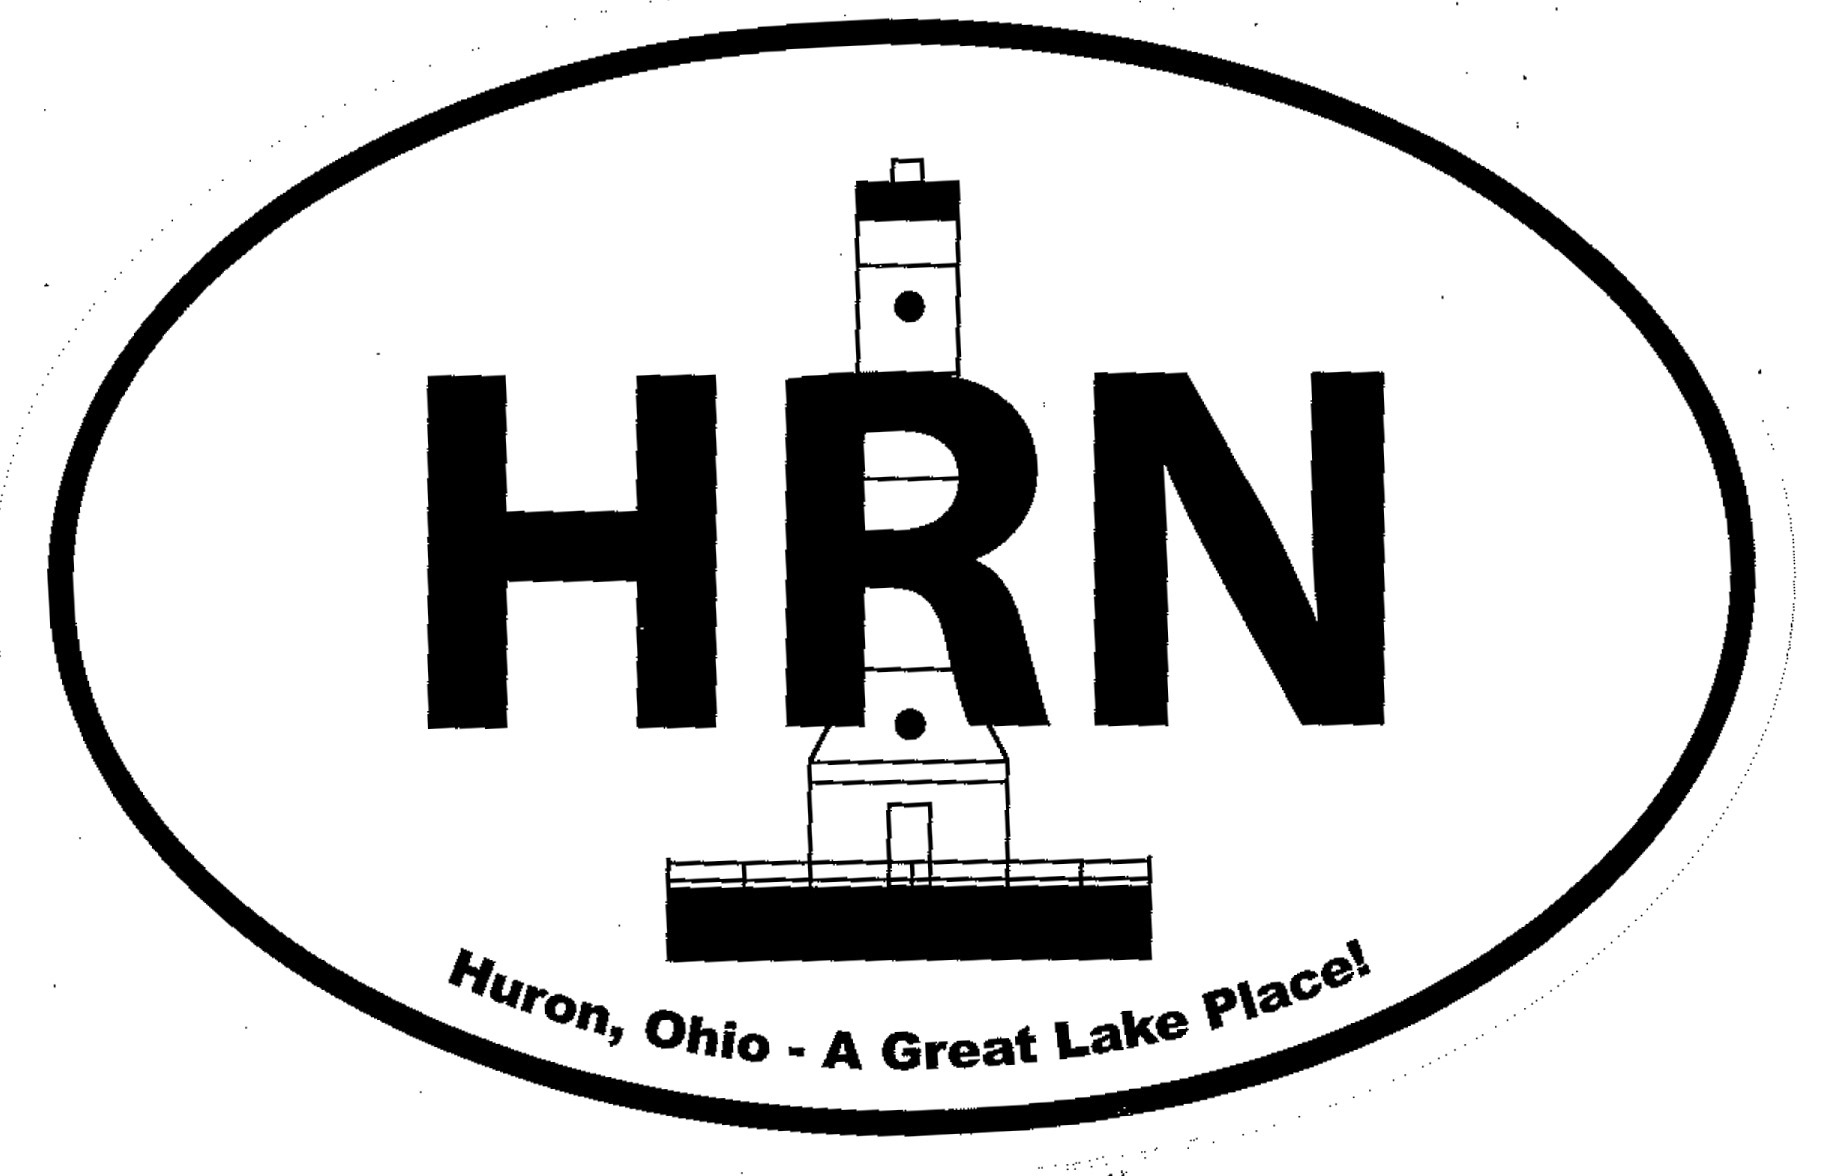 Parks and Recreation :: City of Huron Ohio